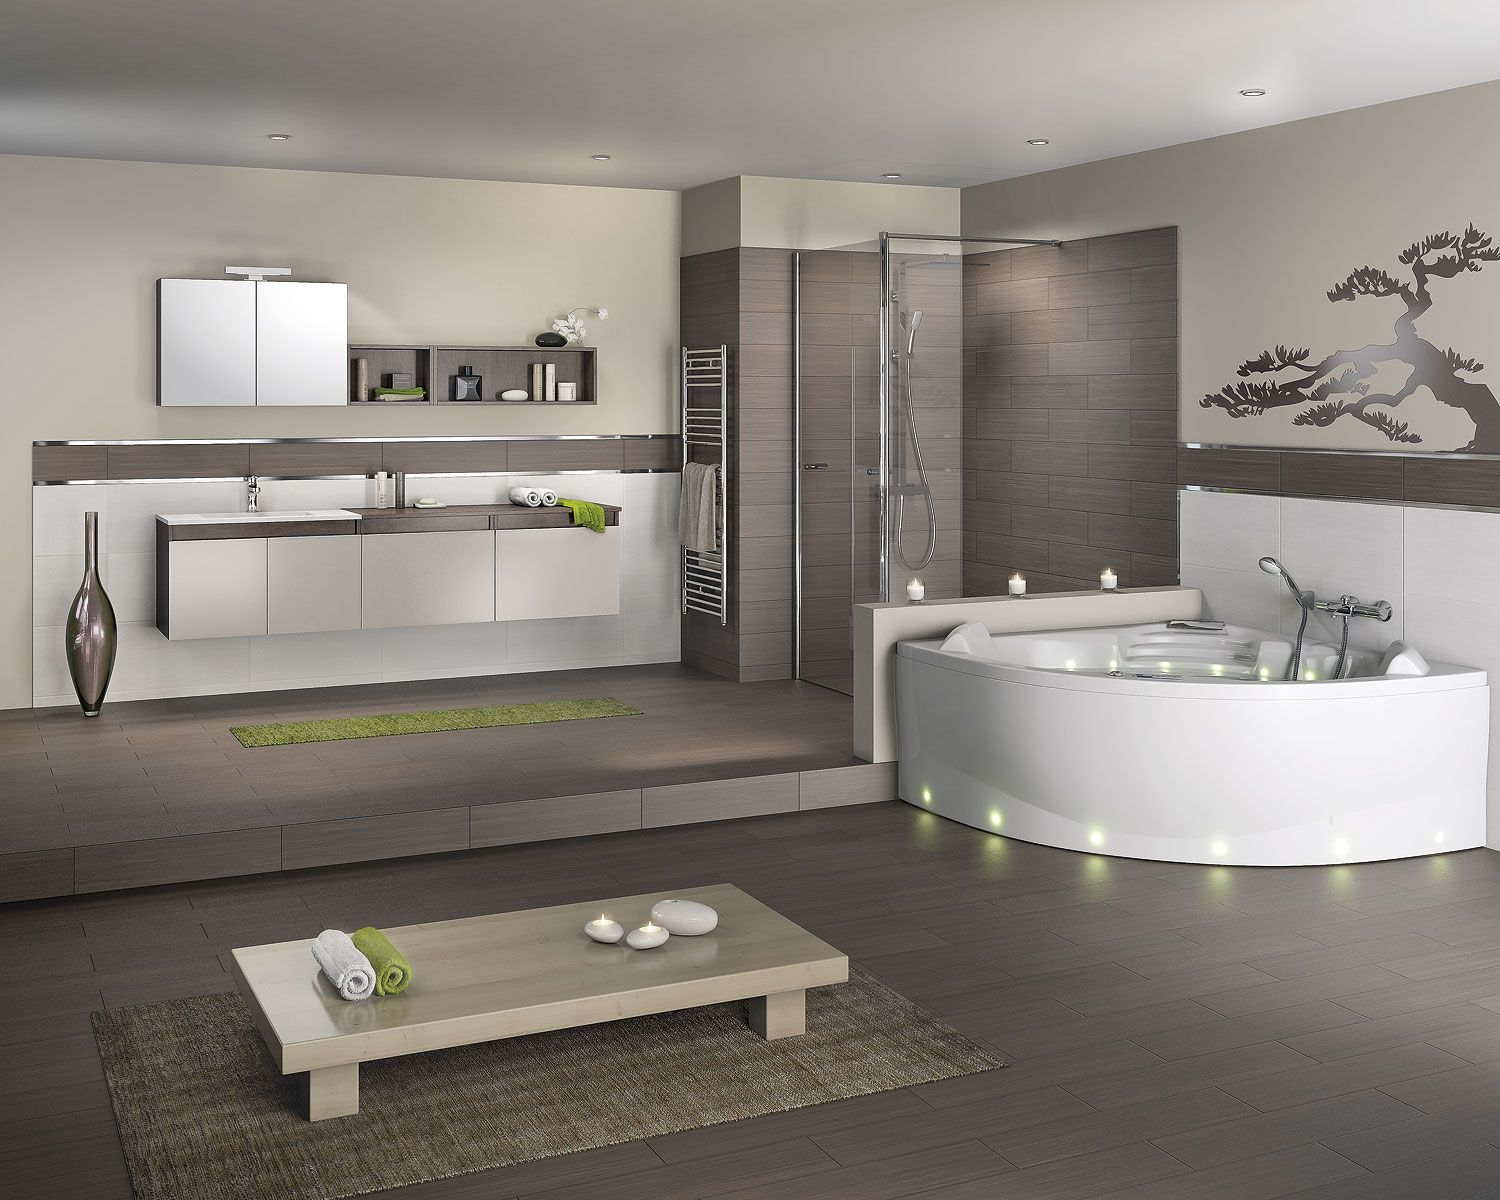 Wc porcelanosa great cheap good bathrooms faience salle de bain